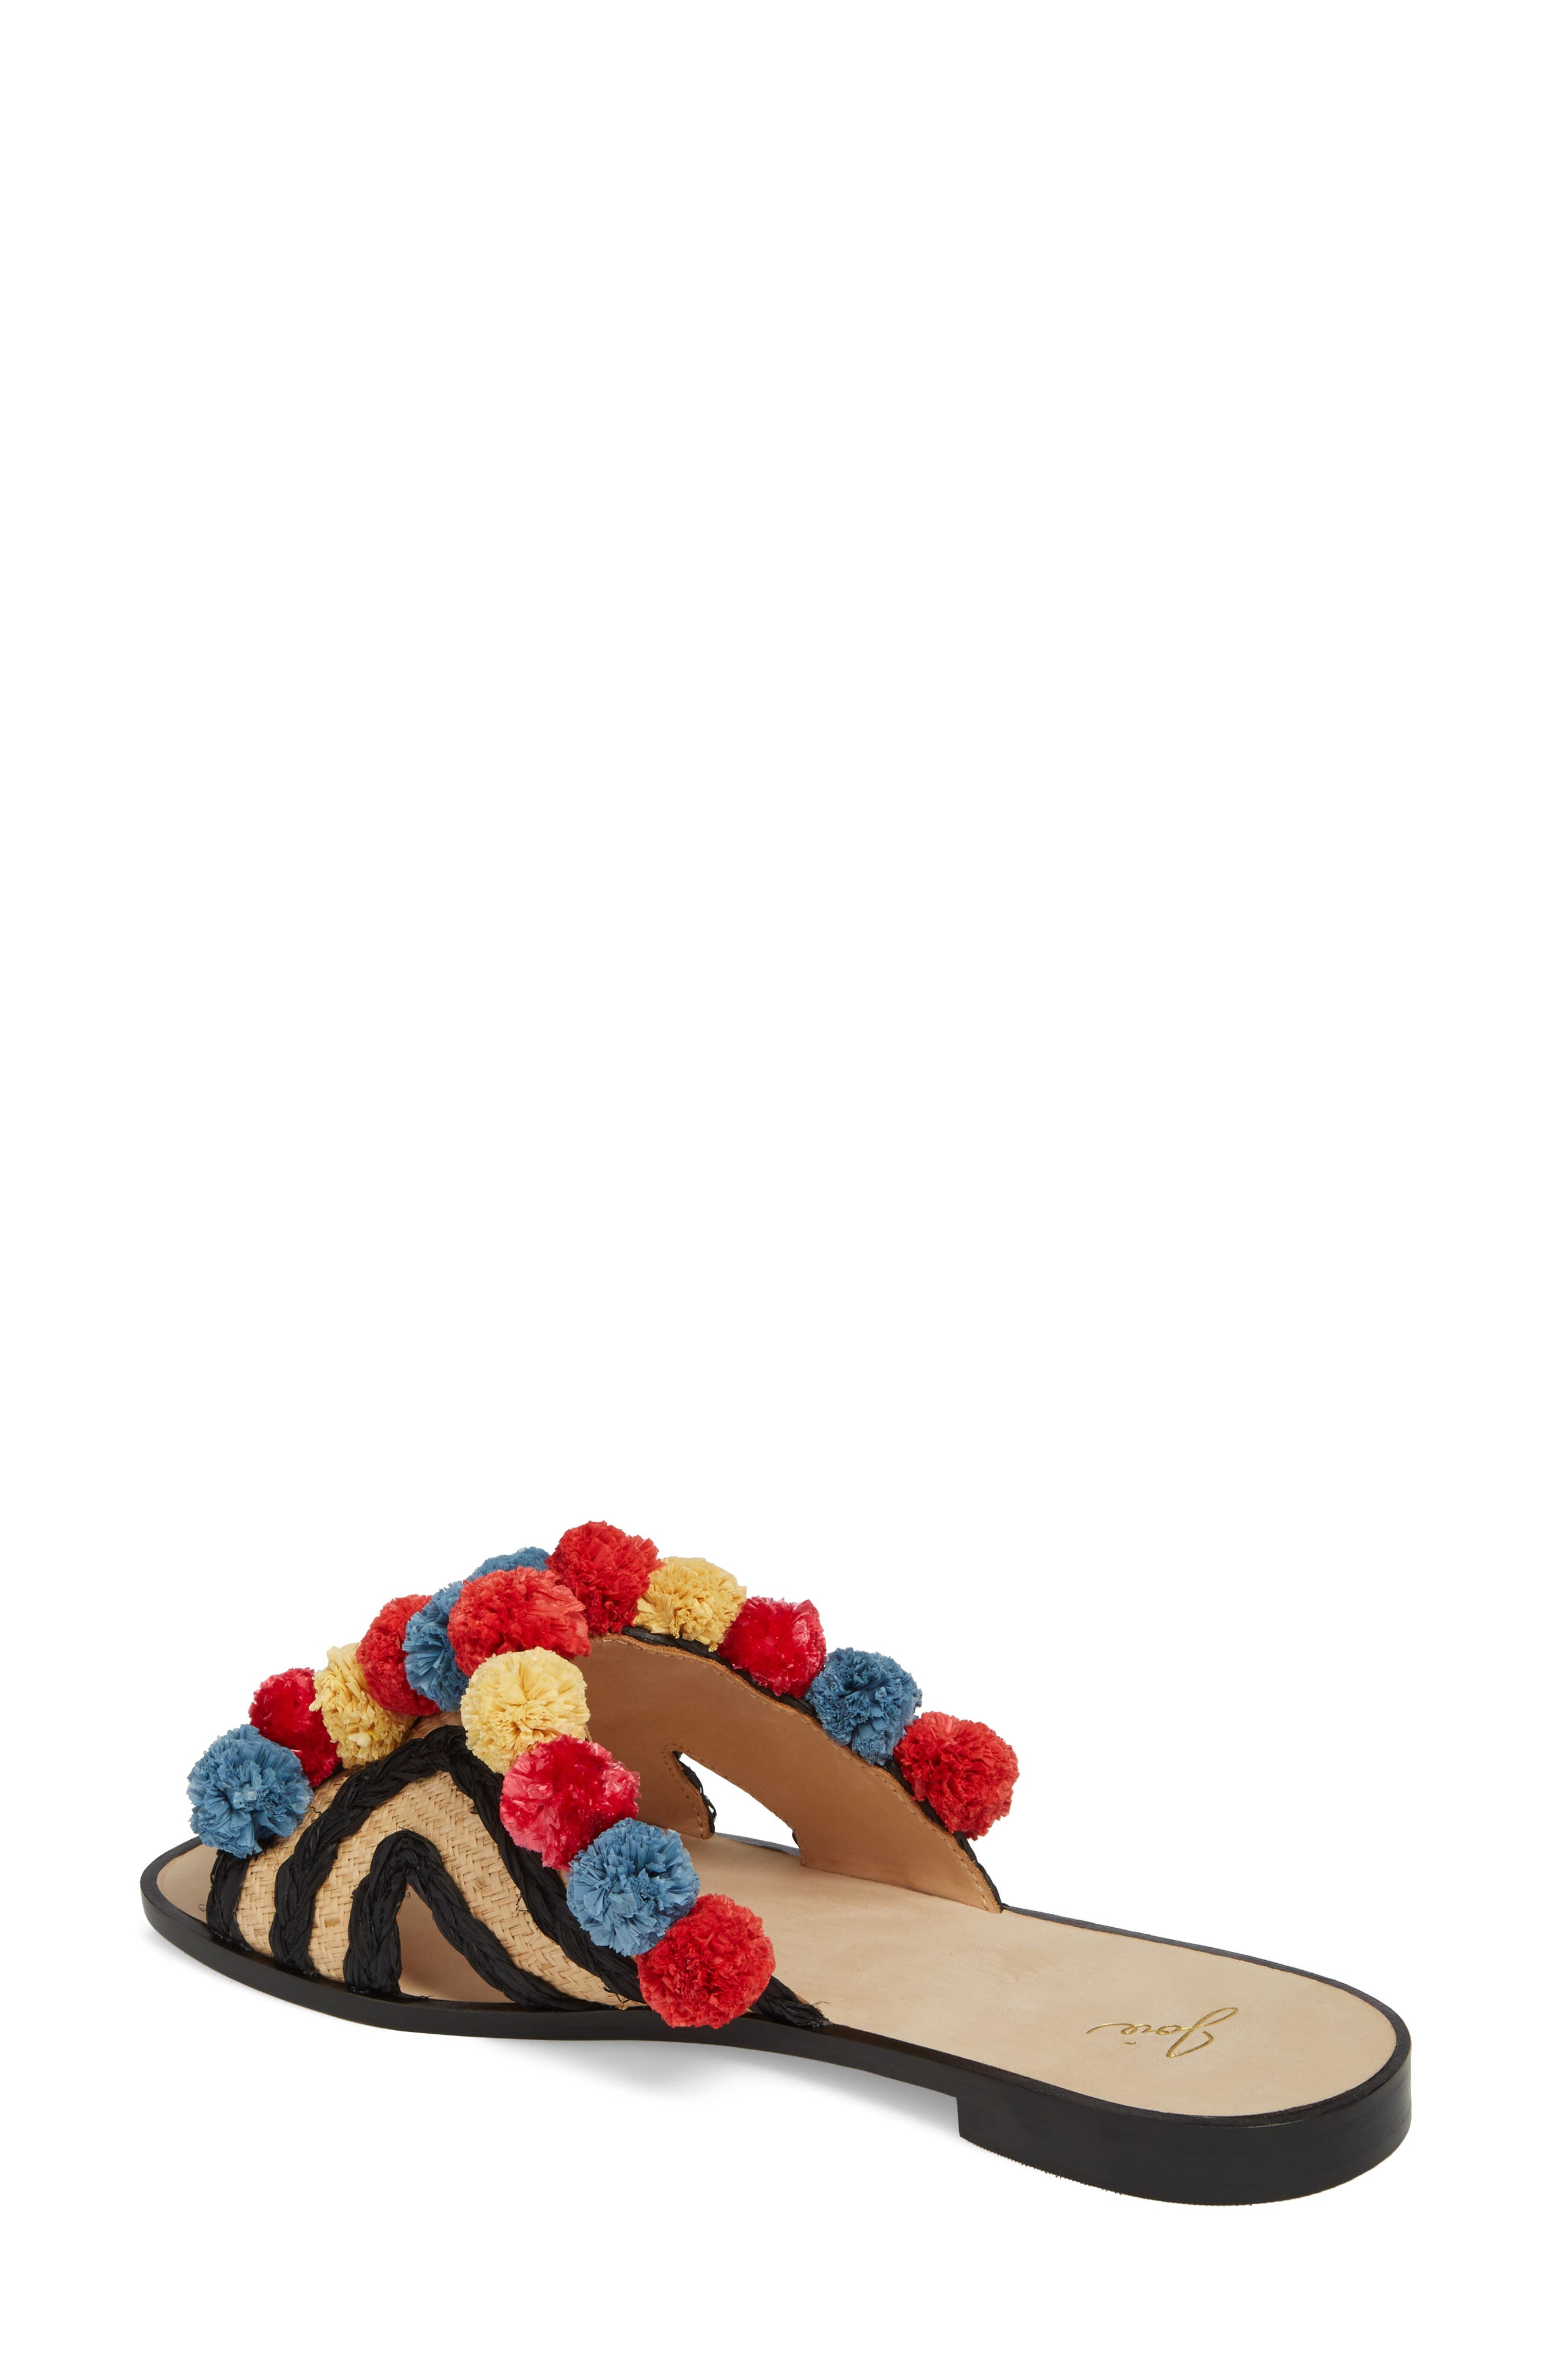 Paden Pompom Slide Sandals,                             Alternate thumbnail 2, color,                             002